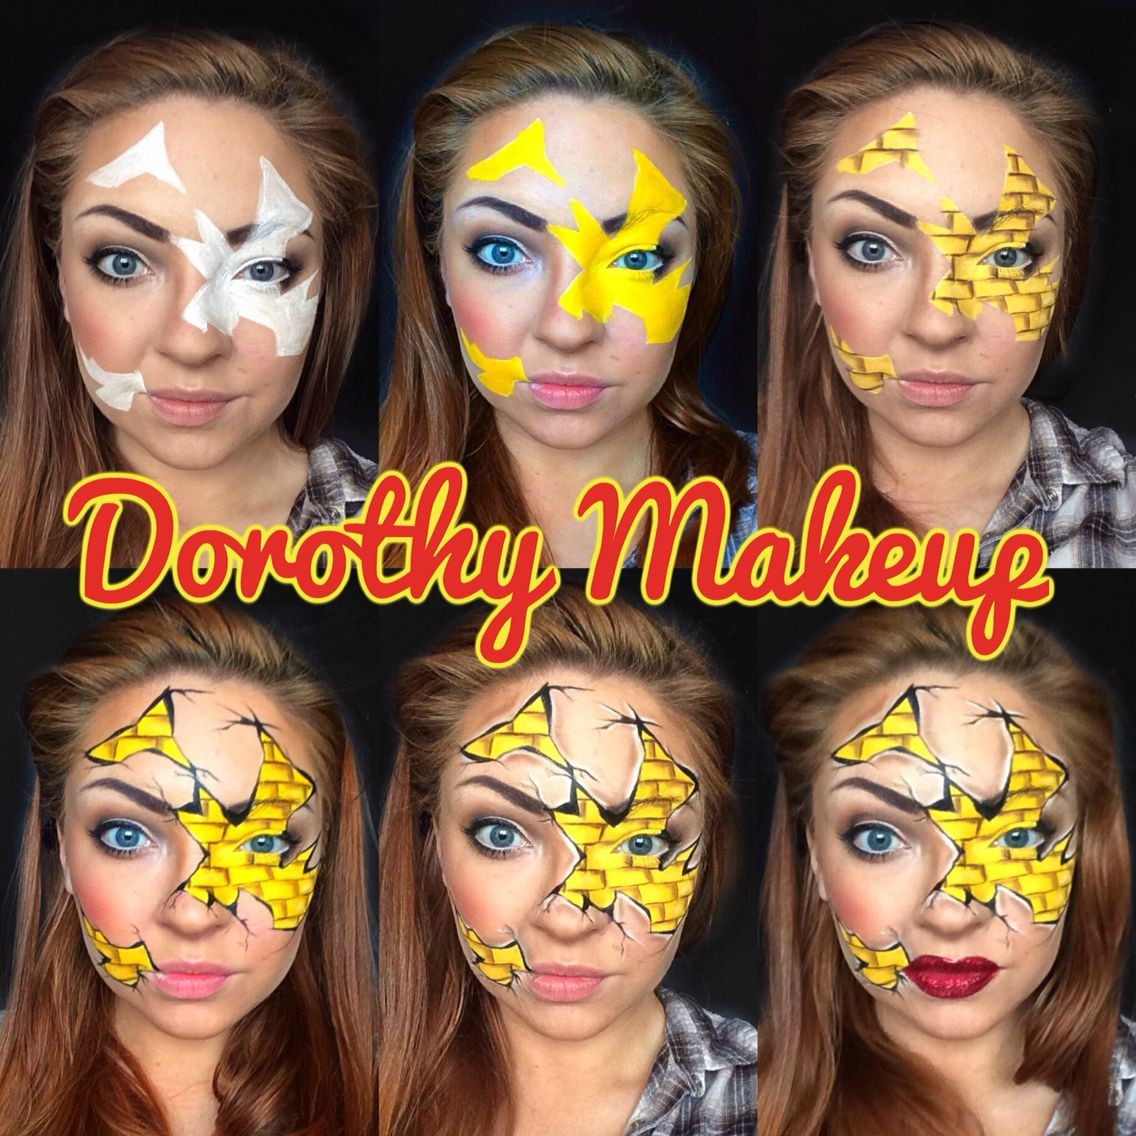 Step By Step Dorothy Wizard Of Oz Makeup So Gonna Be My